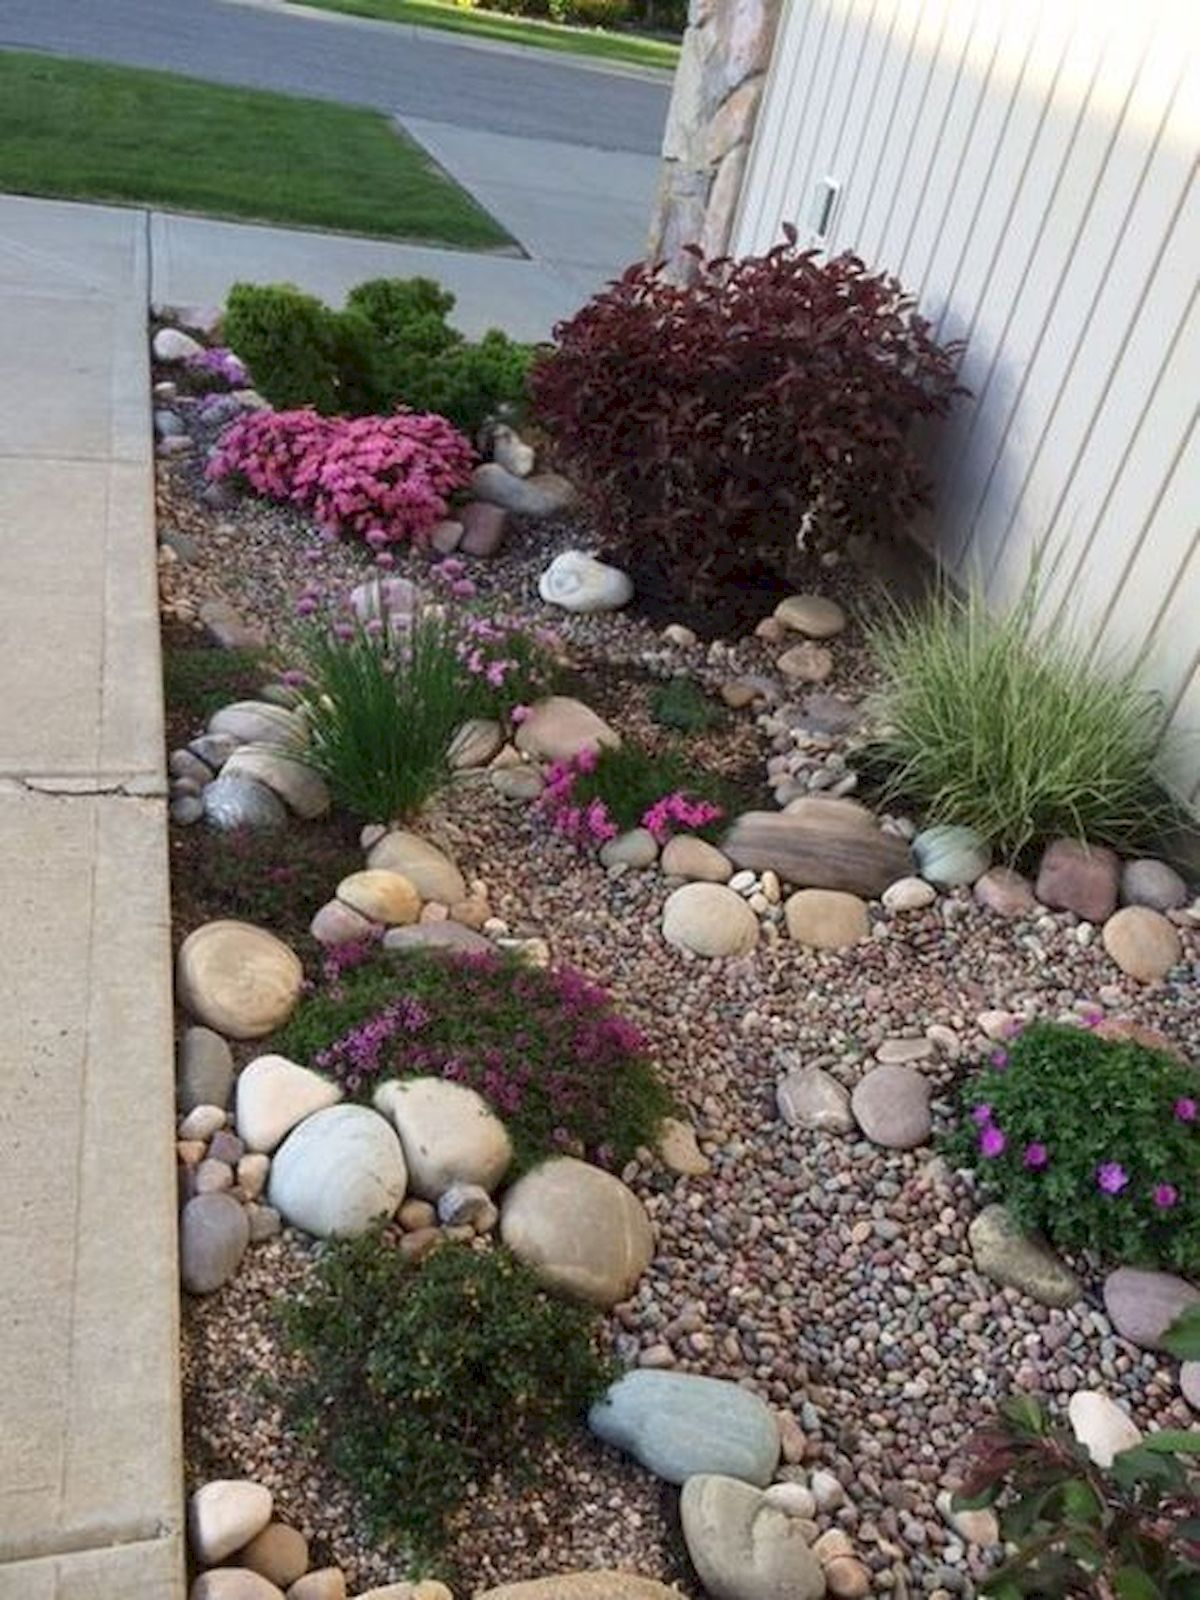 Attractive Front Yard Landscaping Ideas Can Make Your Residence A Lot More Appealing An Rock Garden Landscaping Front Yard Landscaping Design Front Yard Garden